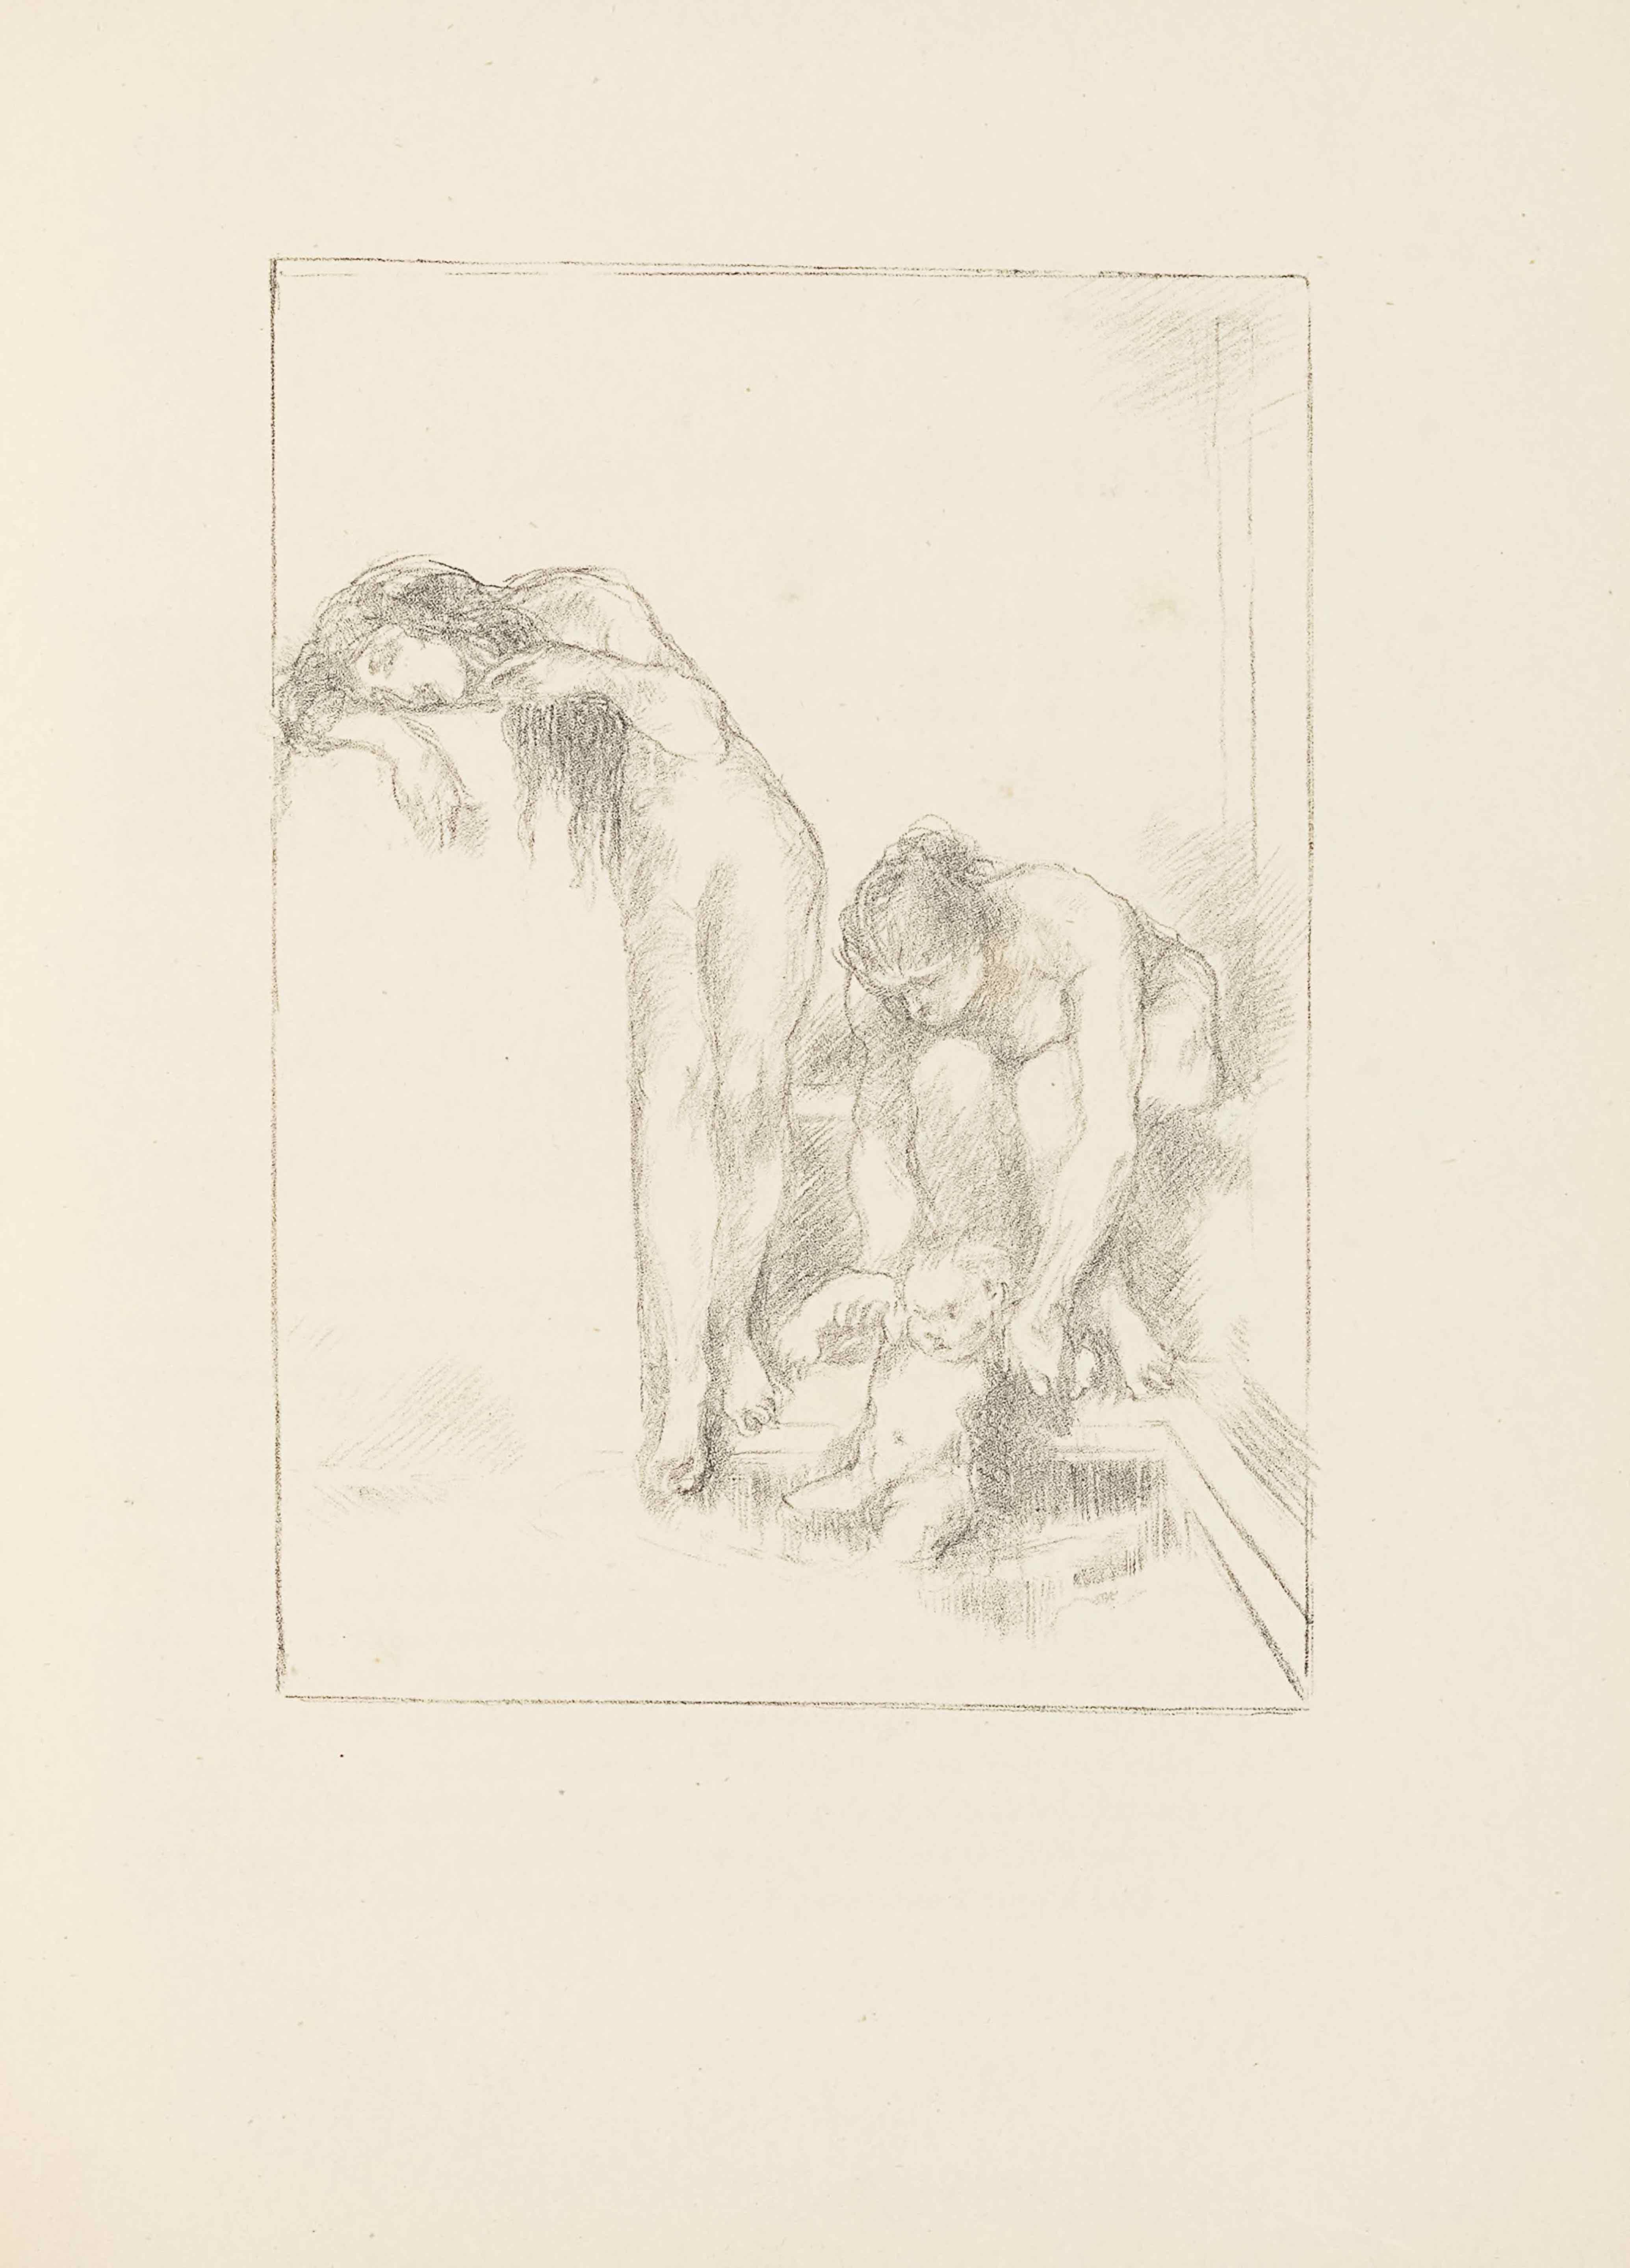 This lithograph appears in portrait orientation, within a light frame. The image shows three naked figures bathing: two women and a baby. The woman on the left is standing beside a large pillar or block and resting her head on its top. Her body faces forward to the viewer, and her right arm is bent and resting on top of the block, with her head rested horizontally on top. Her left arm is also bent, holding strands of her long hair back. She has long and wavy dark hair. Her face is inexpressive, showing only open eyes and a closed mouth. To her right is a woman sitting on a plain box or step that is shaded slightly darker than the surrounding area. She has long hair pulled back into a knot and is leaning forward with arms extended down and out to hold up the baby in the pool below. The baby sits on the edge of the pool with its body facing forwards to the viewer slightly turned to the left, with legs spread and arms extended out to the side. The arms are held out by the seated woman above. The baby has light short hair.